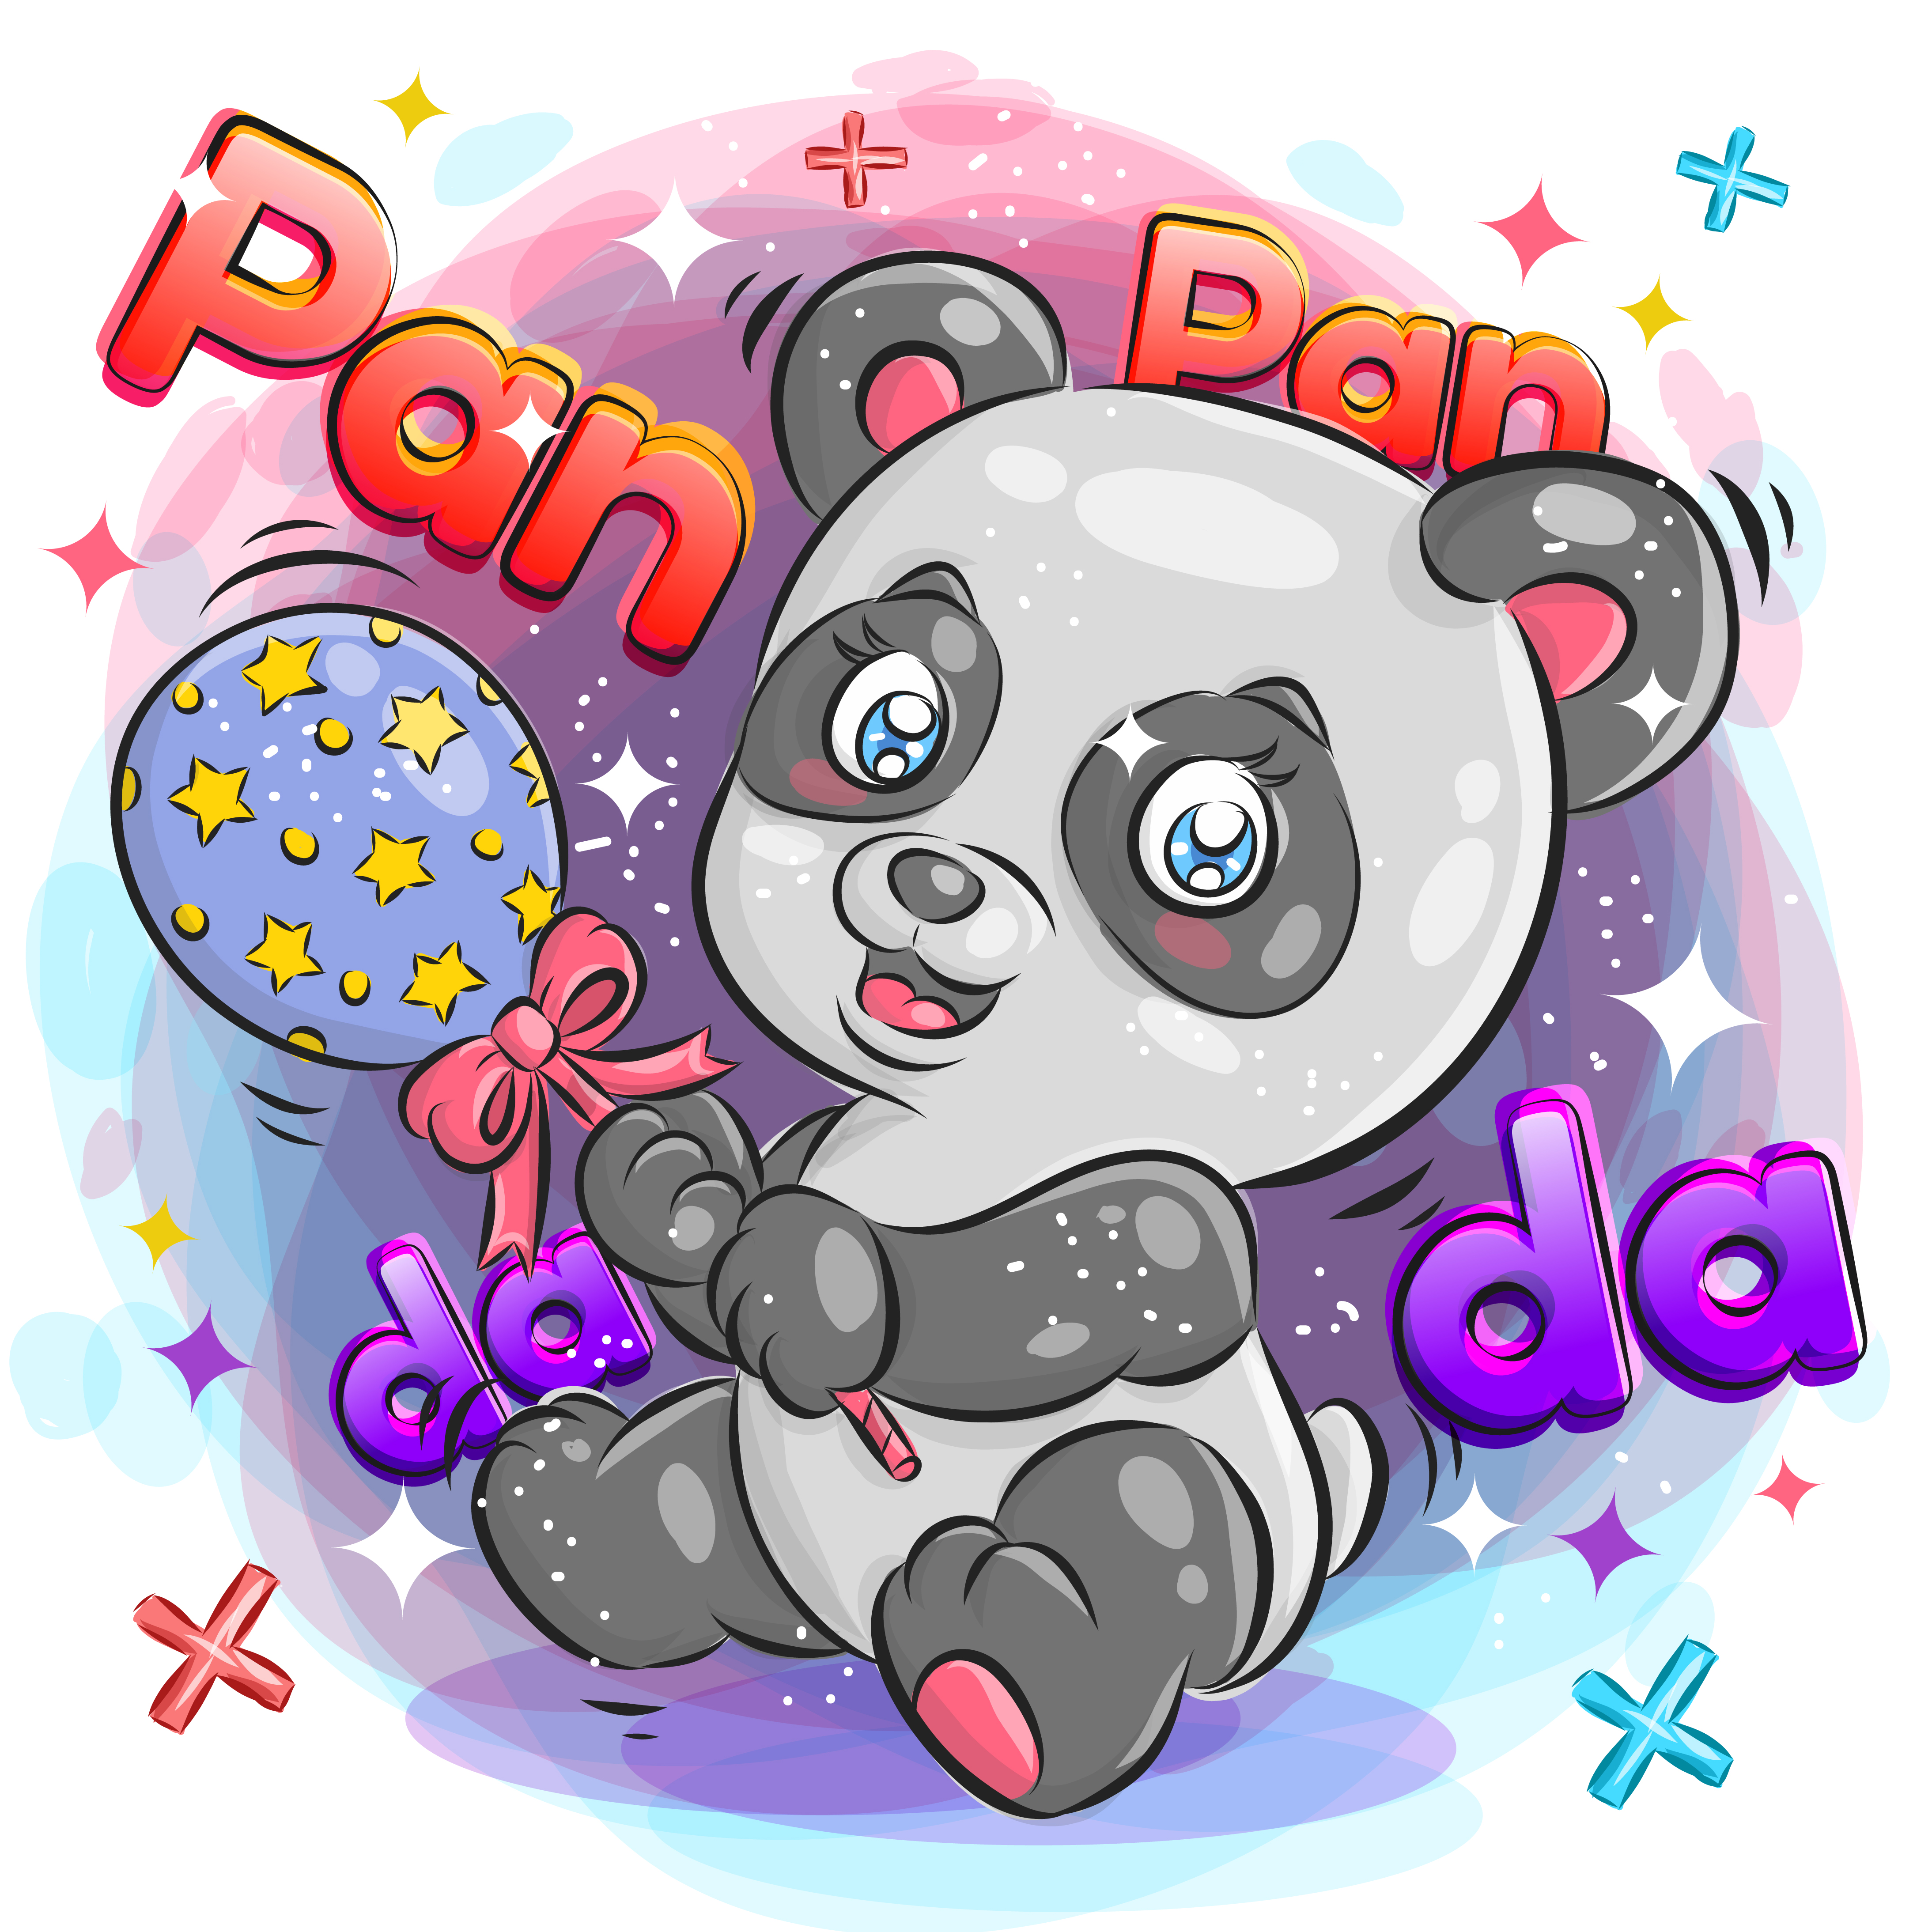 Cute Panda with Cheerful Expression Playing with Toy